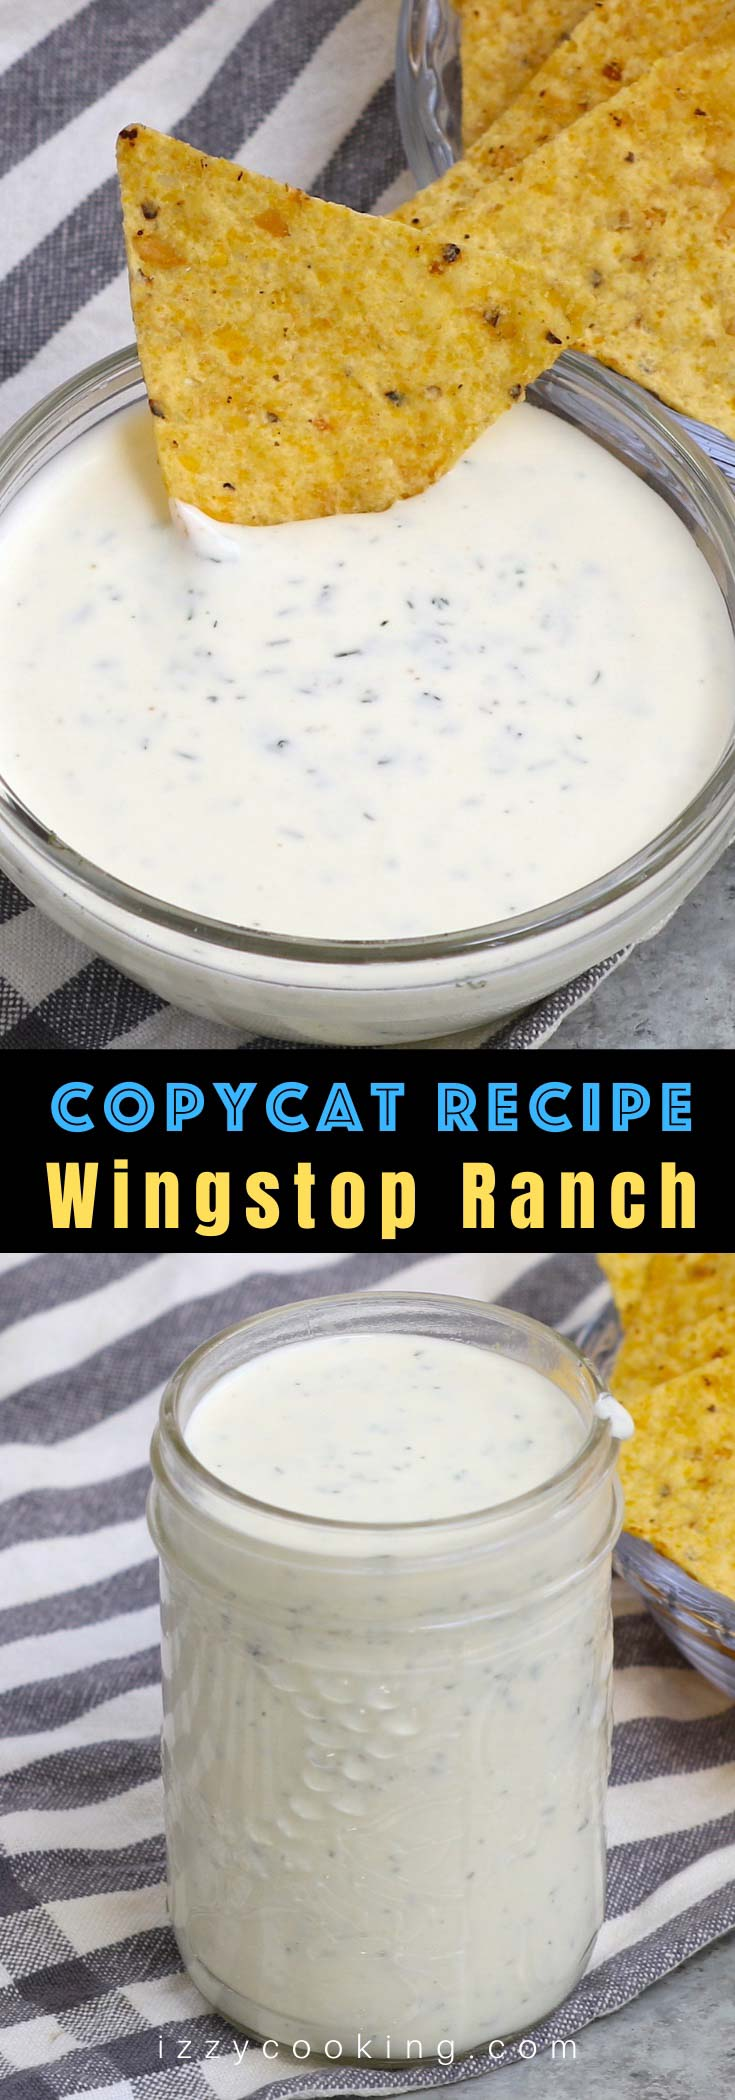 The Best Wingstop Ranch salad dressing is super flavorful and tastes better than anything store-bought! It's our go-to dip for buffalo chicken wings, veggies, chips and pizza alike. This easy copycat ranch recipe takes less than 5 minutes to make at home and is just like the one you would get at a Wingstop restaurant.